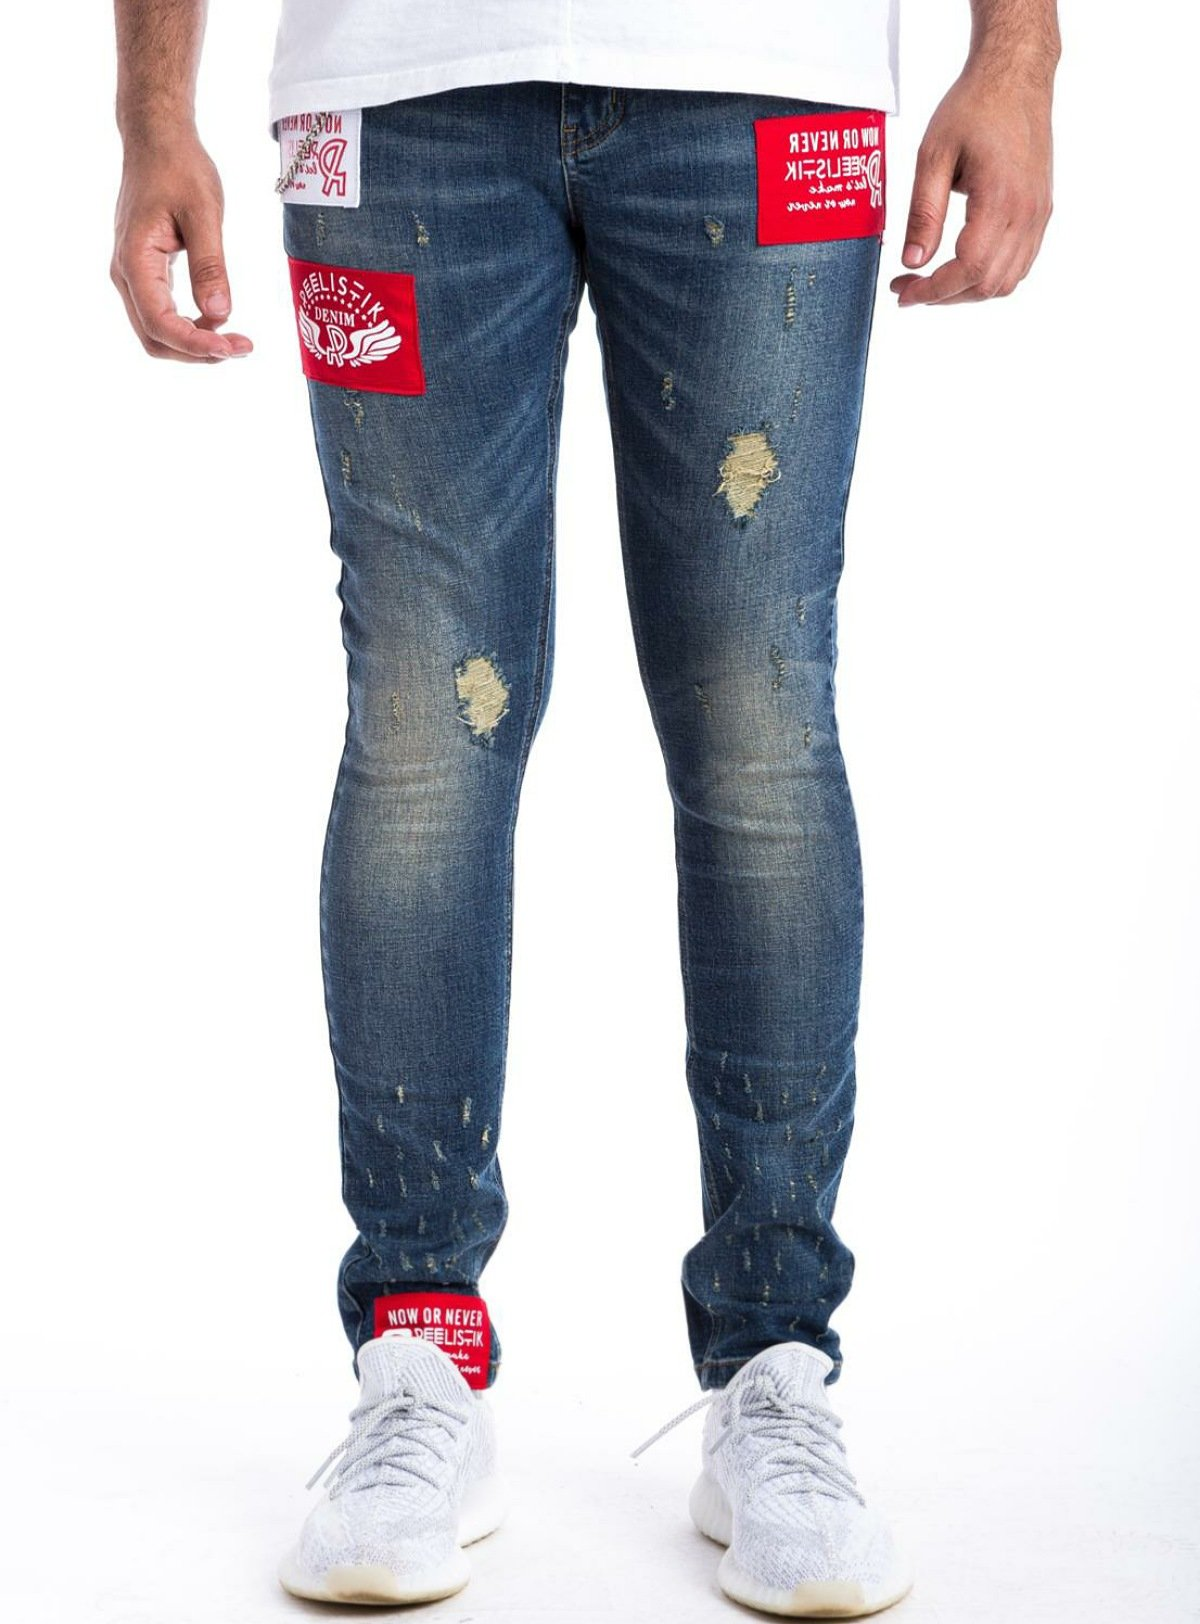 Reelistik Jeans - Blue With Red And White Patches - 0415